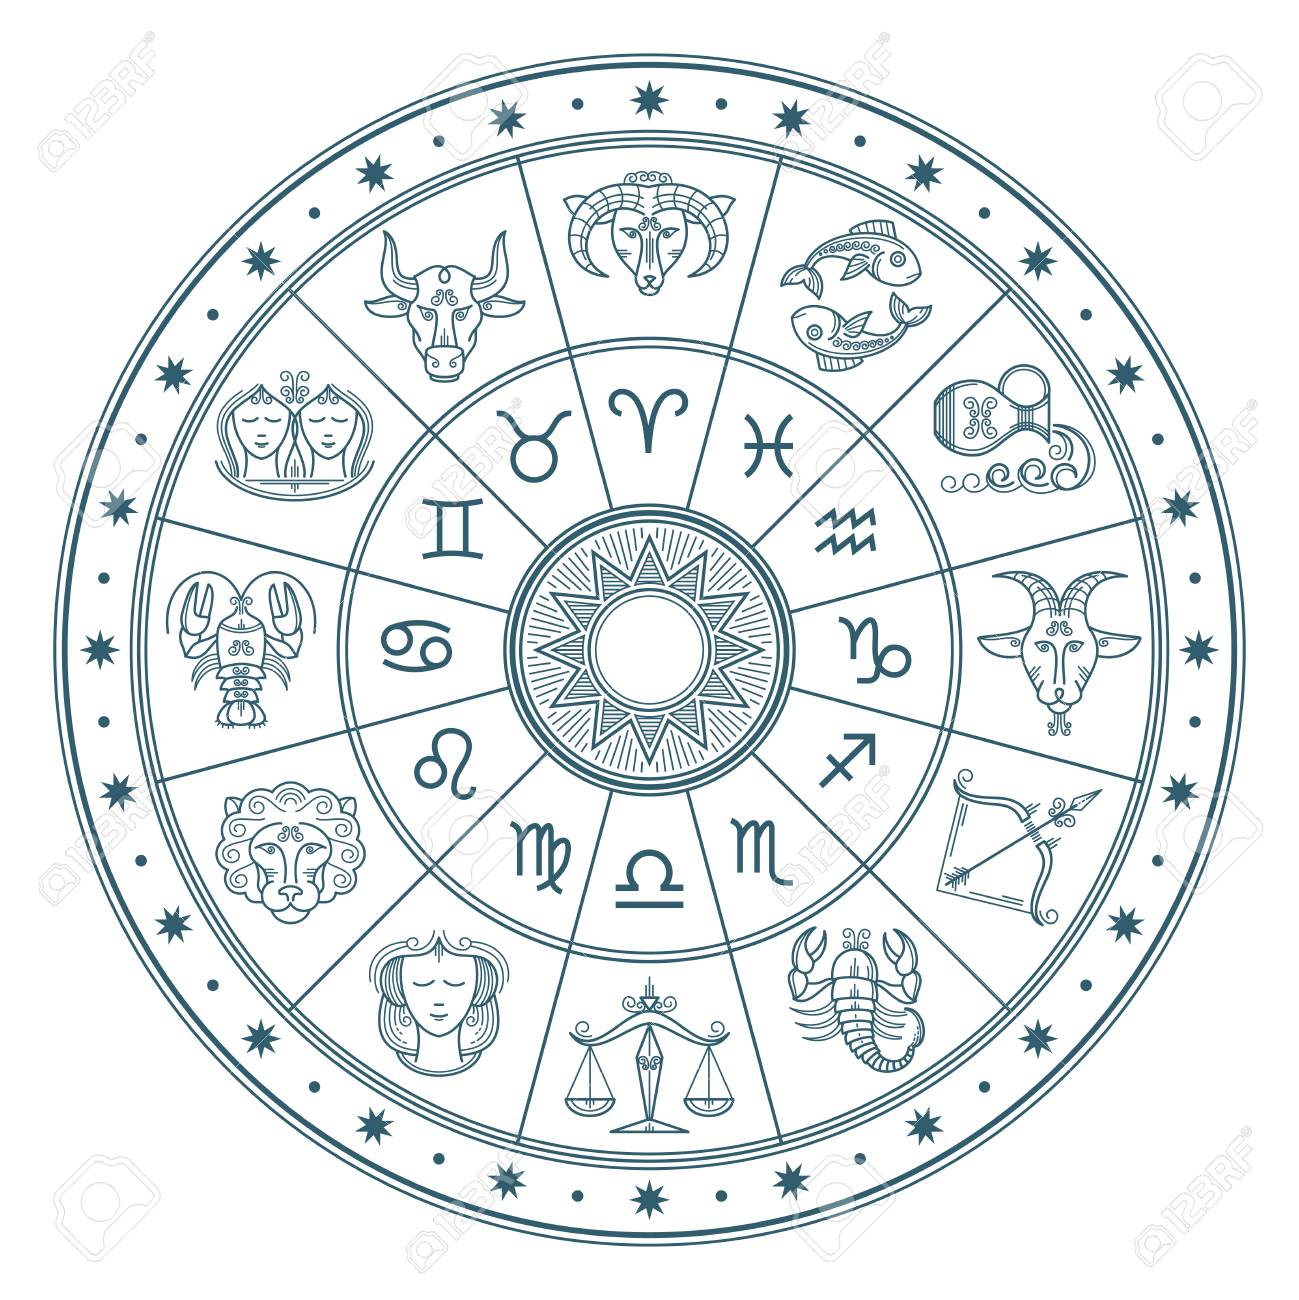 Astrology horoscope circle with zodiac signs vector background astrology horoscope circle with zodiac signs vector background form symbol horoscope calendar collection zodiacal biocorpaavc Images